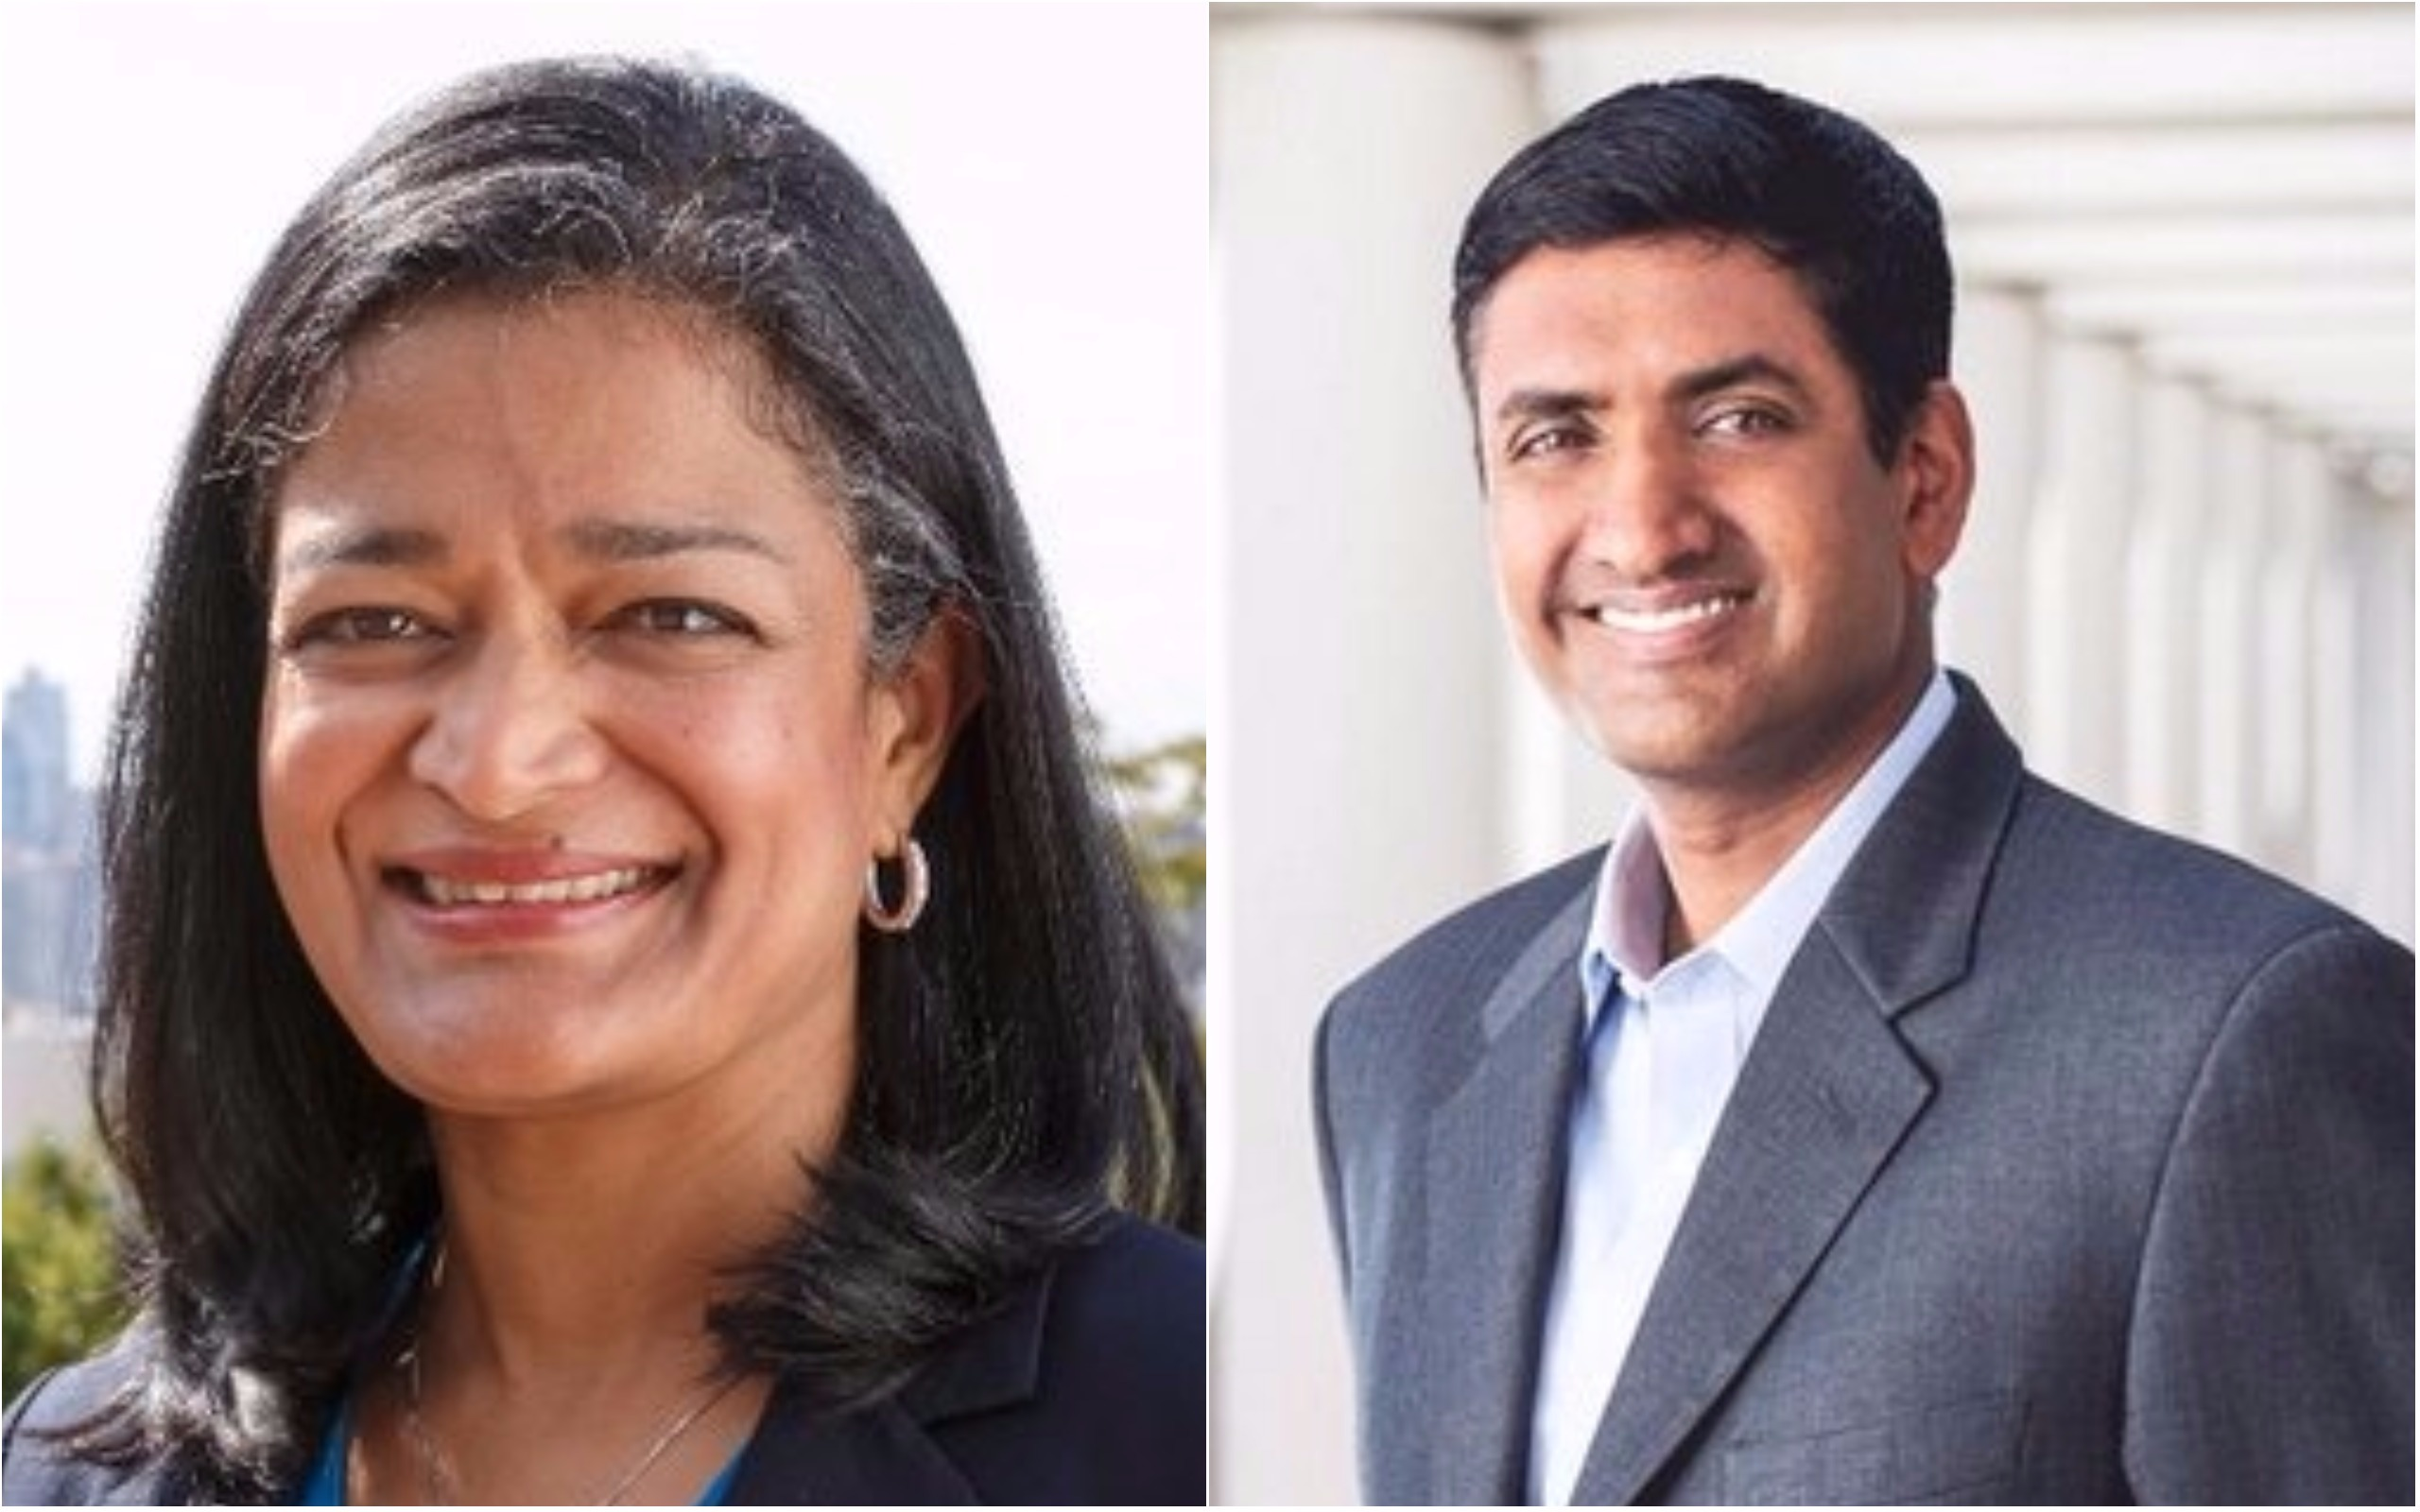 Congress leader Pramila Jayapal (left) and Representative Ro Khanna.